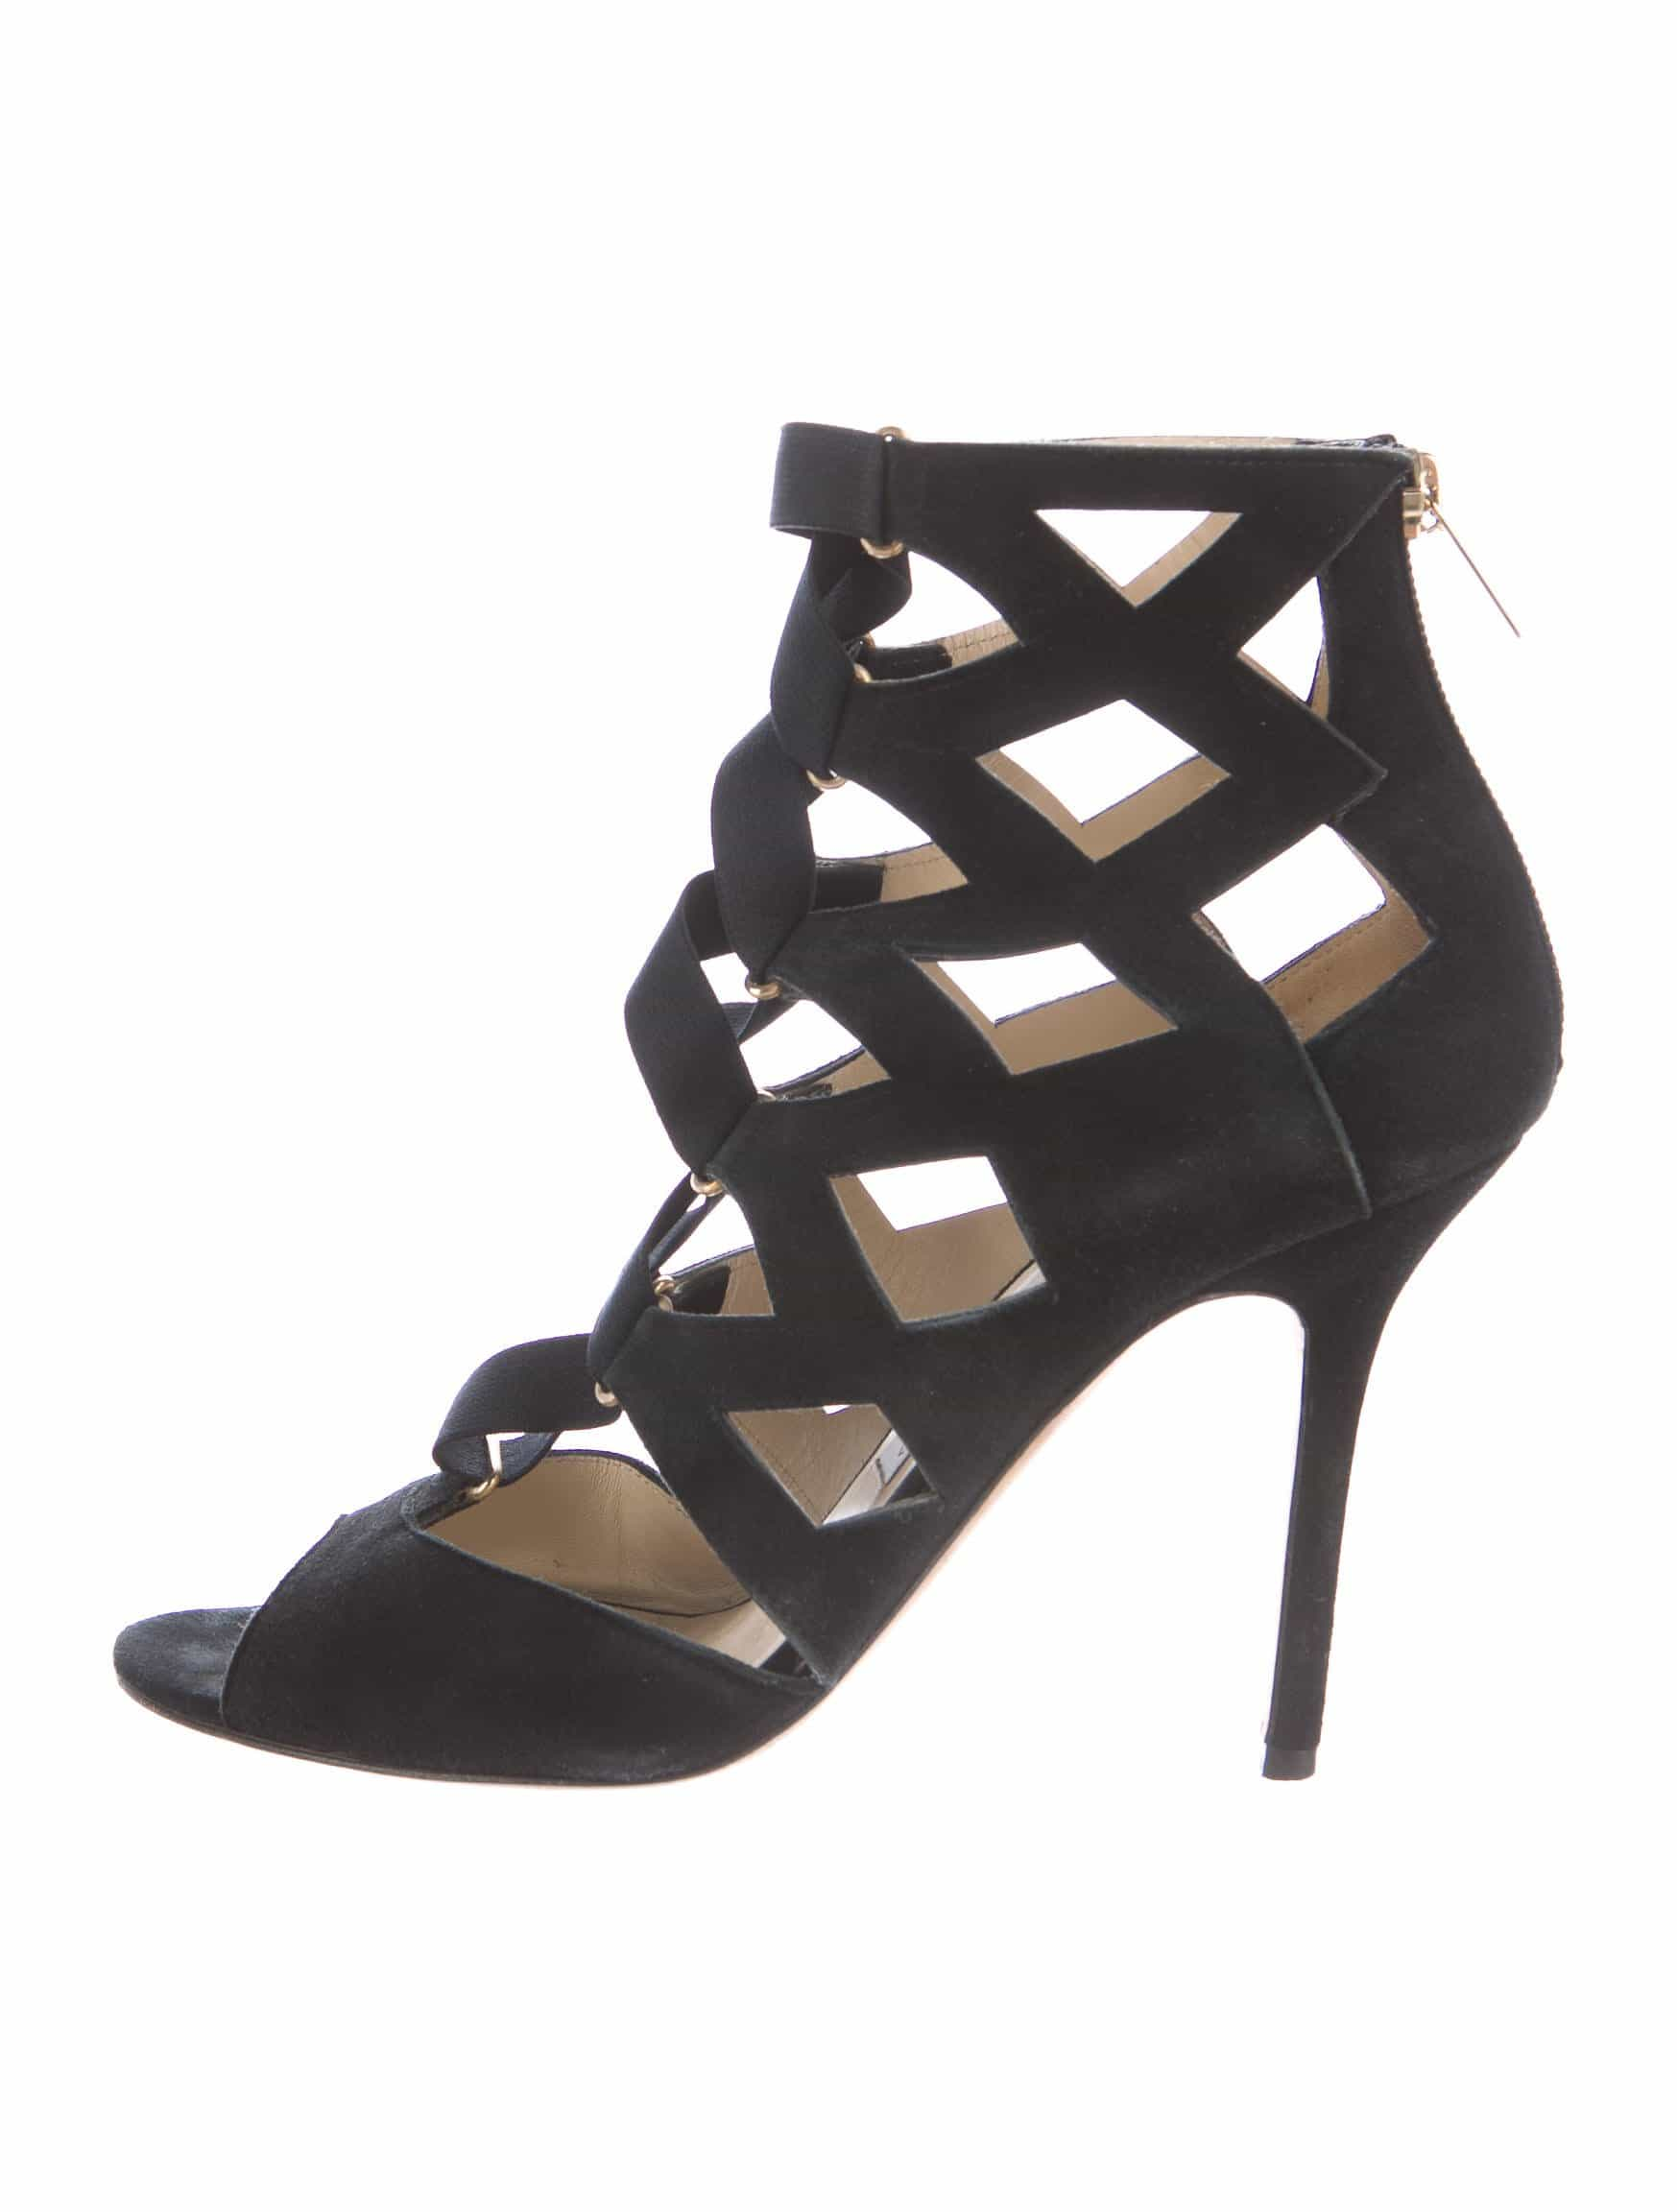 c5460263e1b5 black suede jimmy choo cage sandals size 9 Black Suede Jimmy Choo Cage  Sandals Size 9